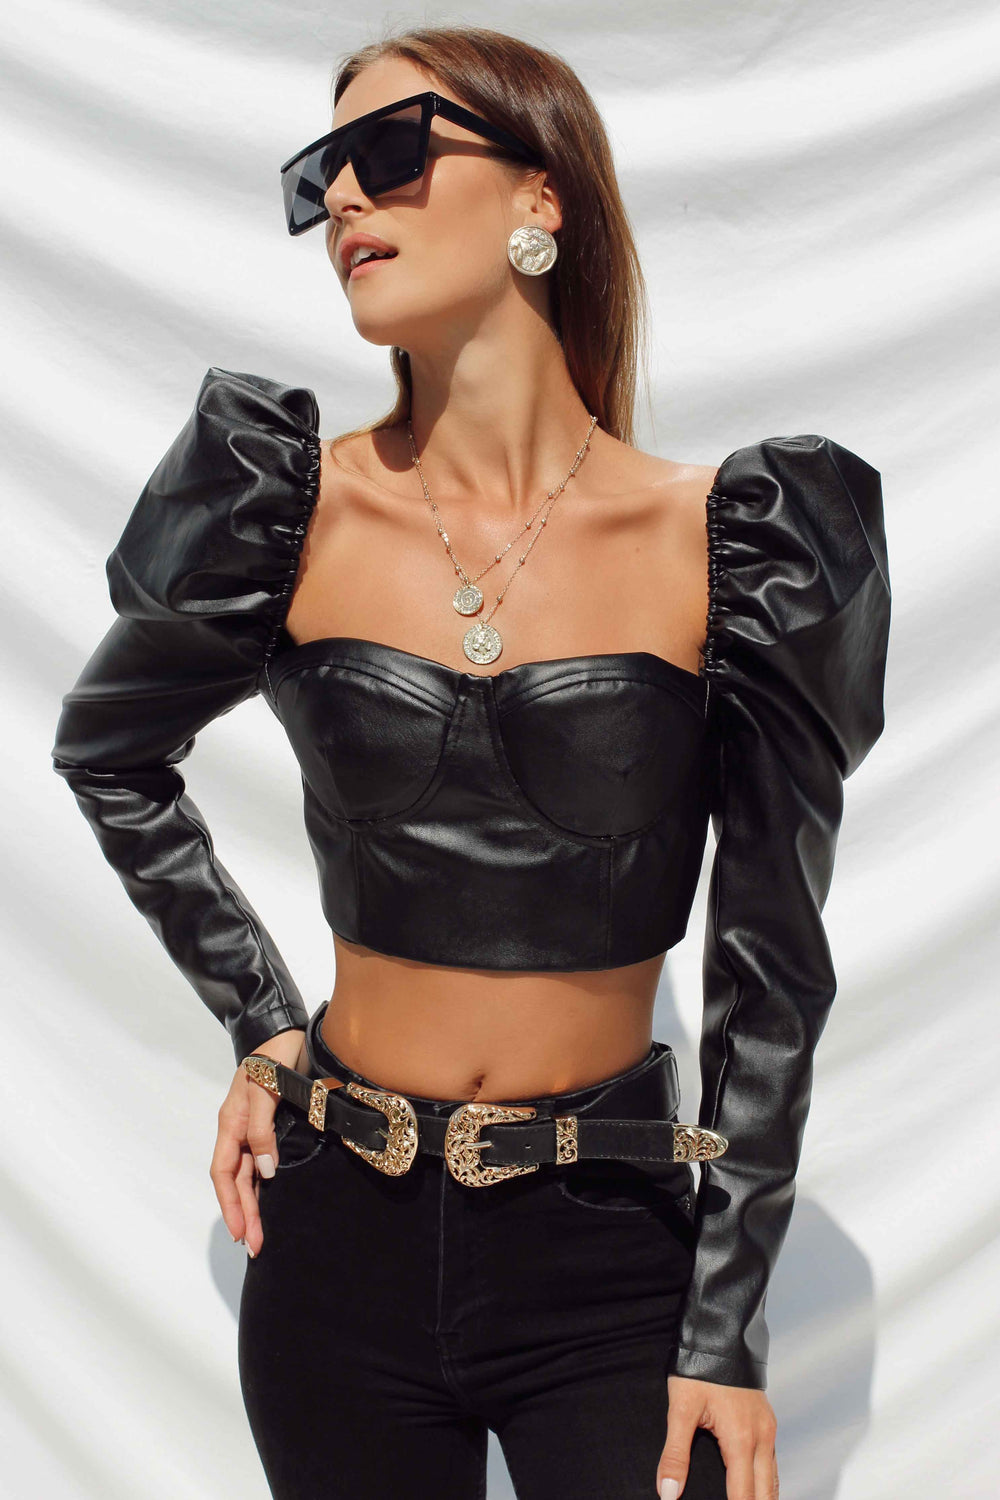 GISELLE TOP | Women's Online Shopping | CHICLEFRIQUE  (4351351652441)